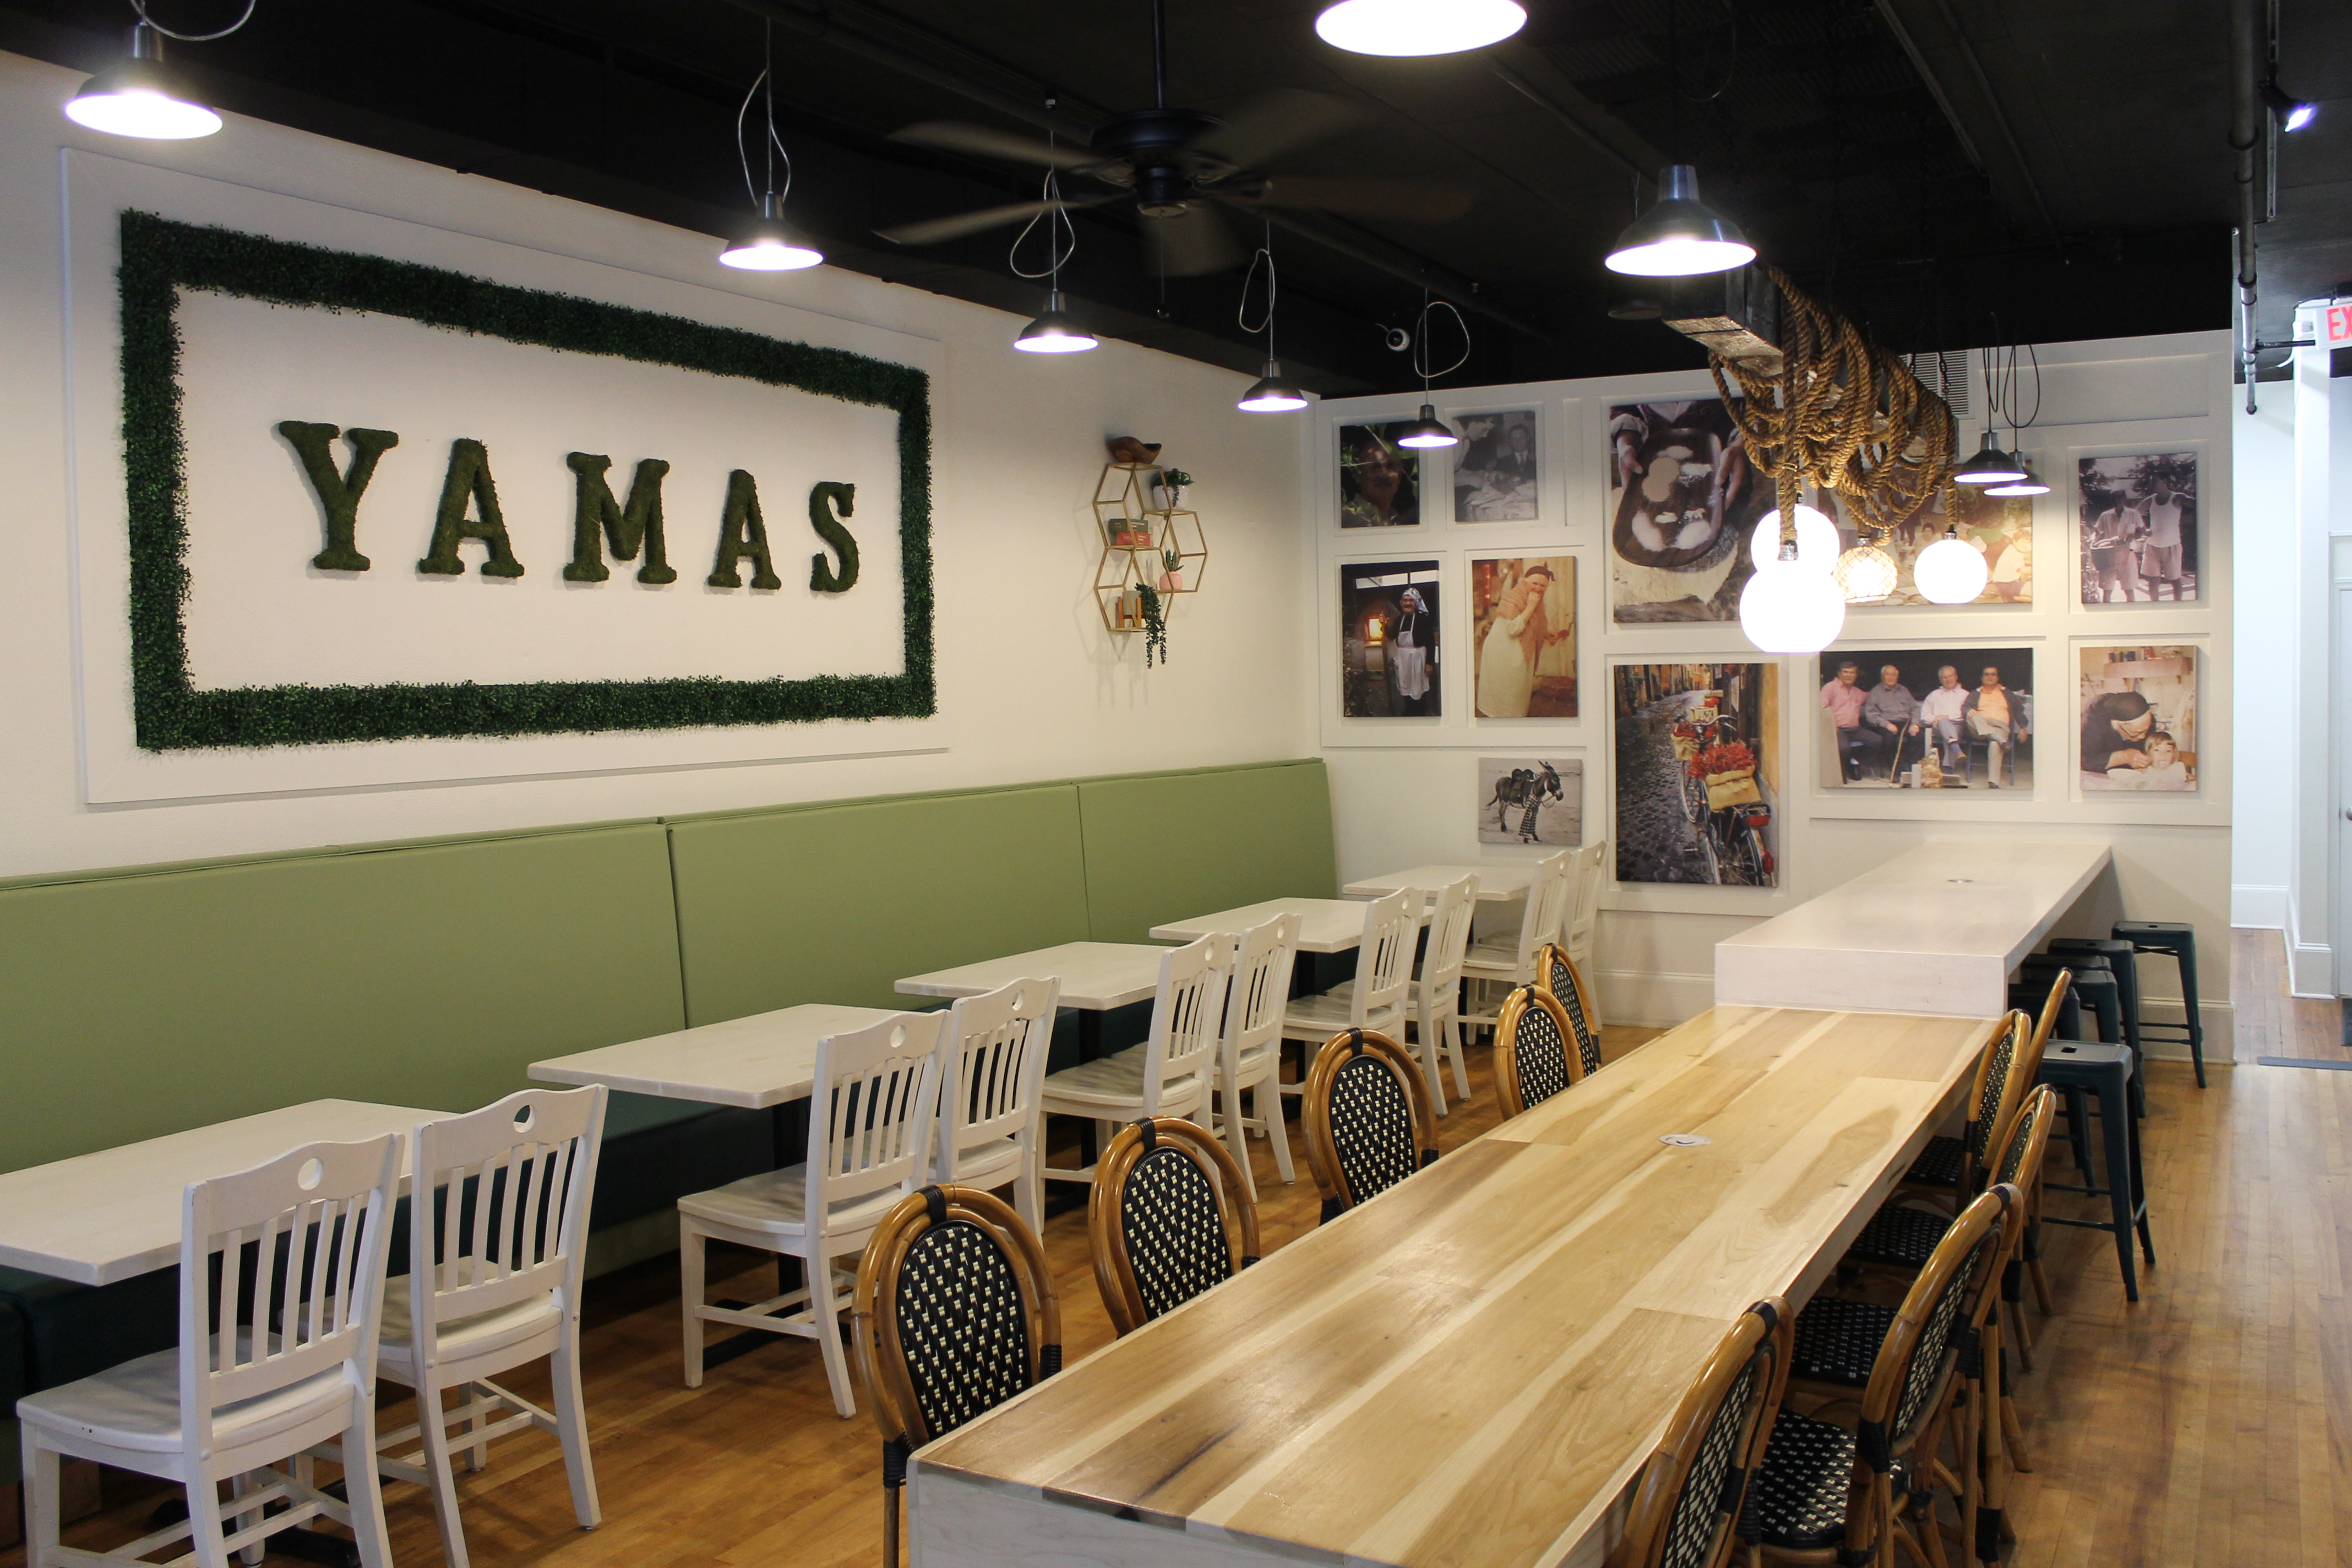 seating in Yamas, green, white, and wood